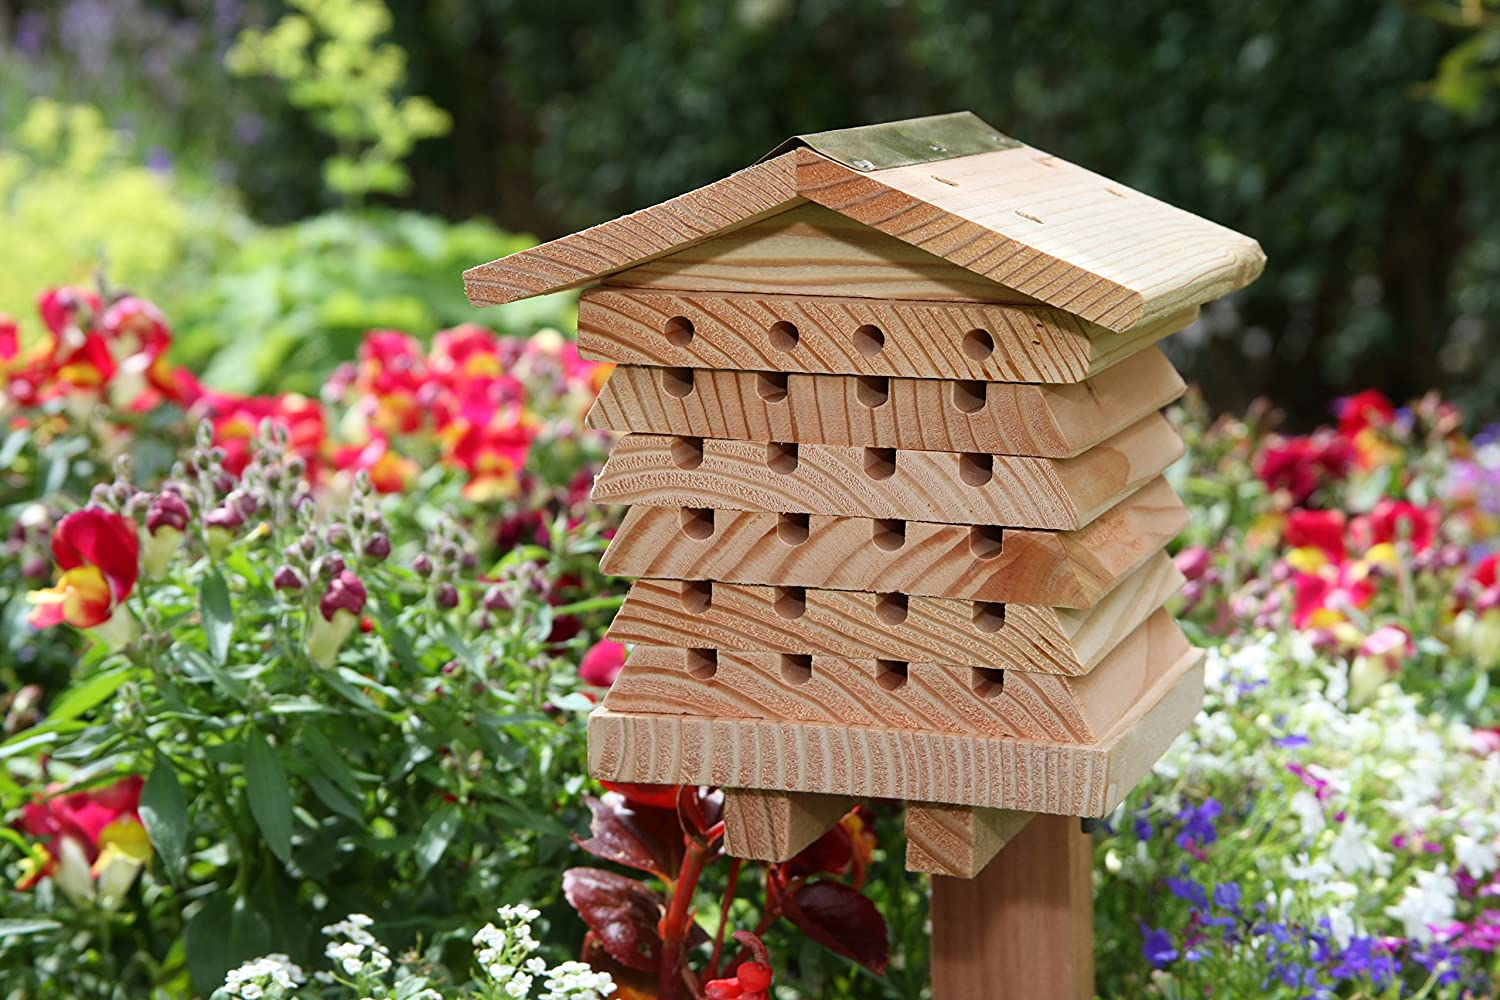 Amazon is selling a beehive that helps encourage bees to gardens in Summer, The Manc